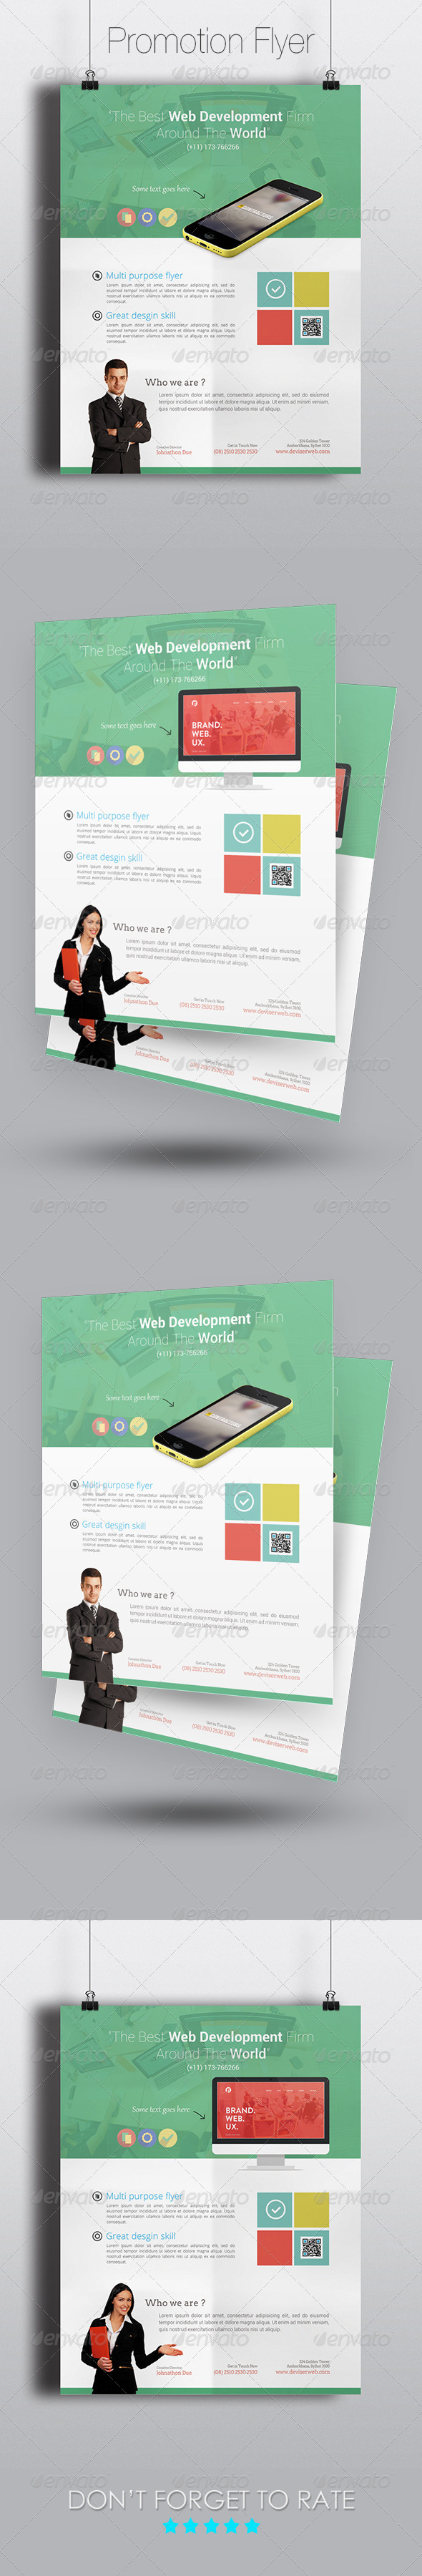 GraphicRiver Smart App Promotion Flyer Template 7582814